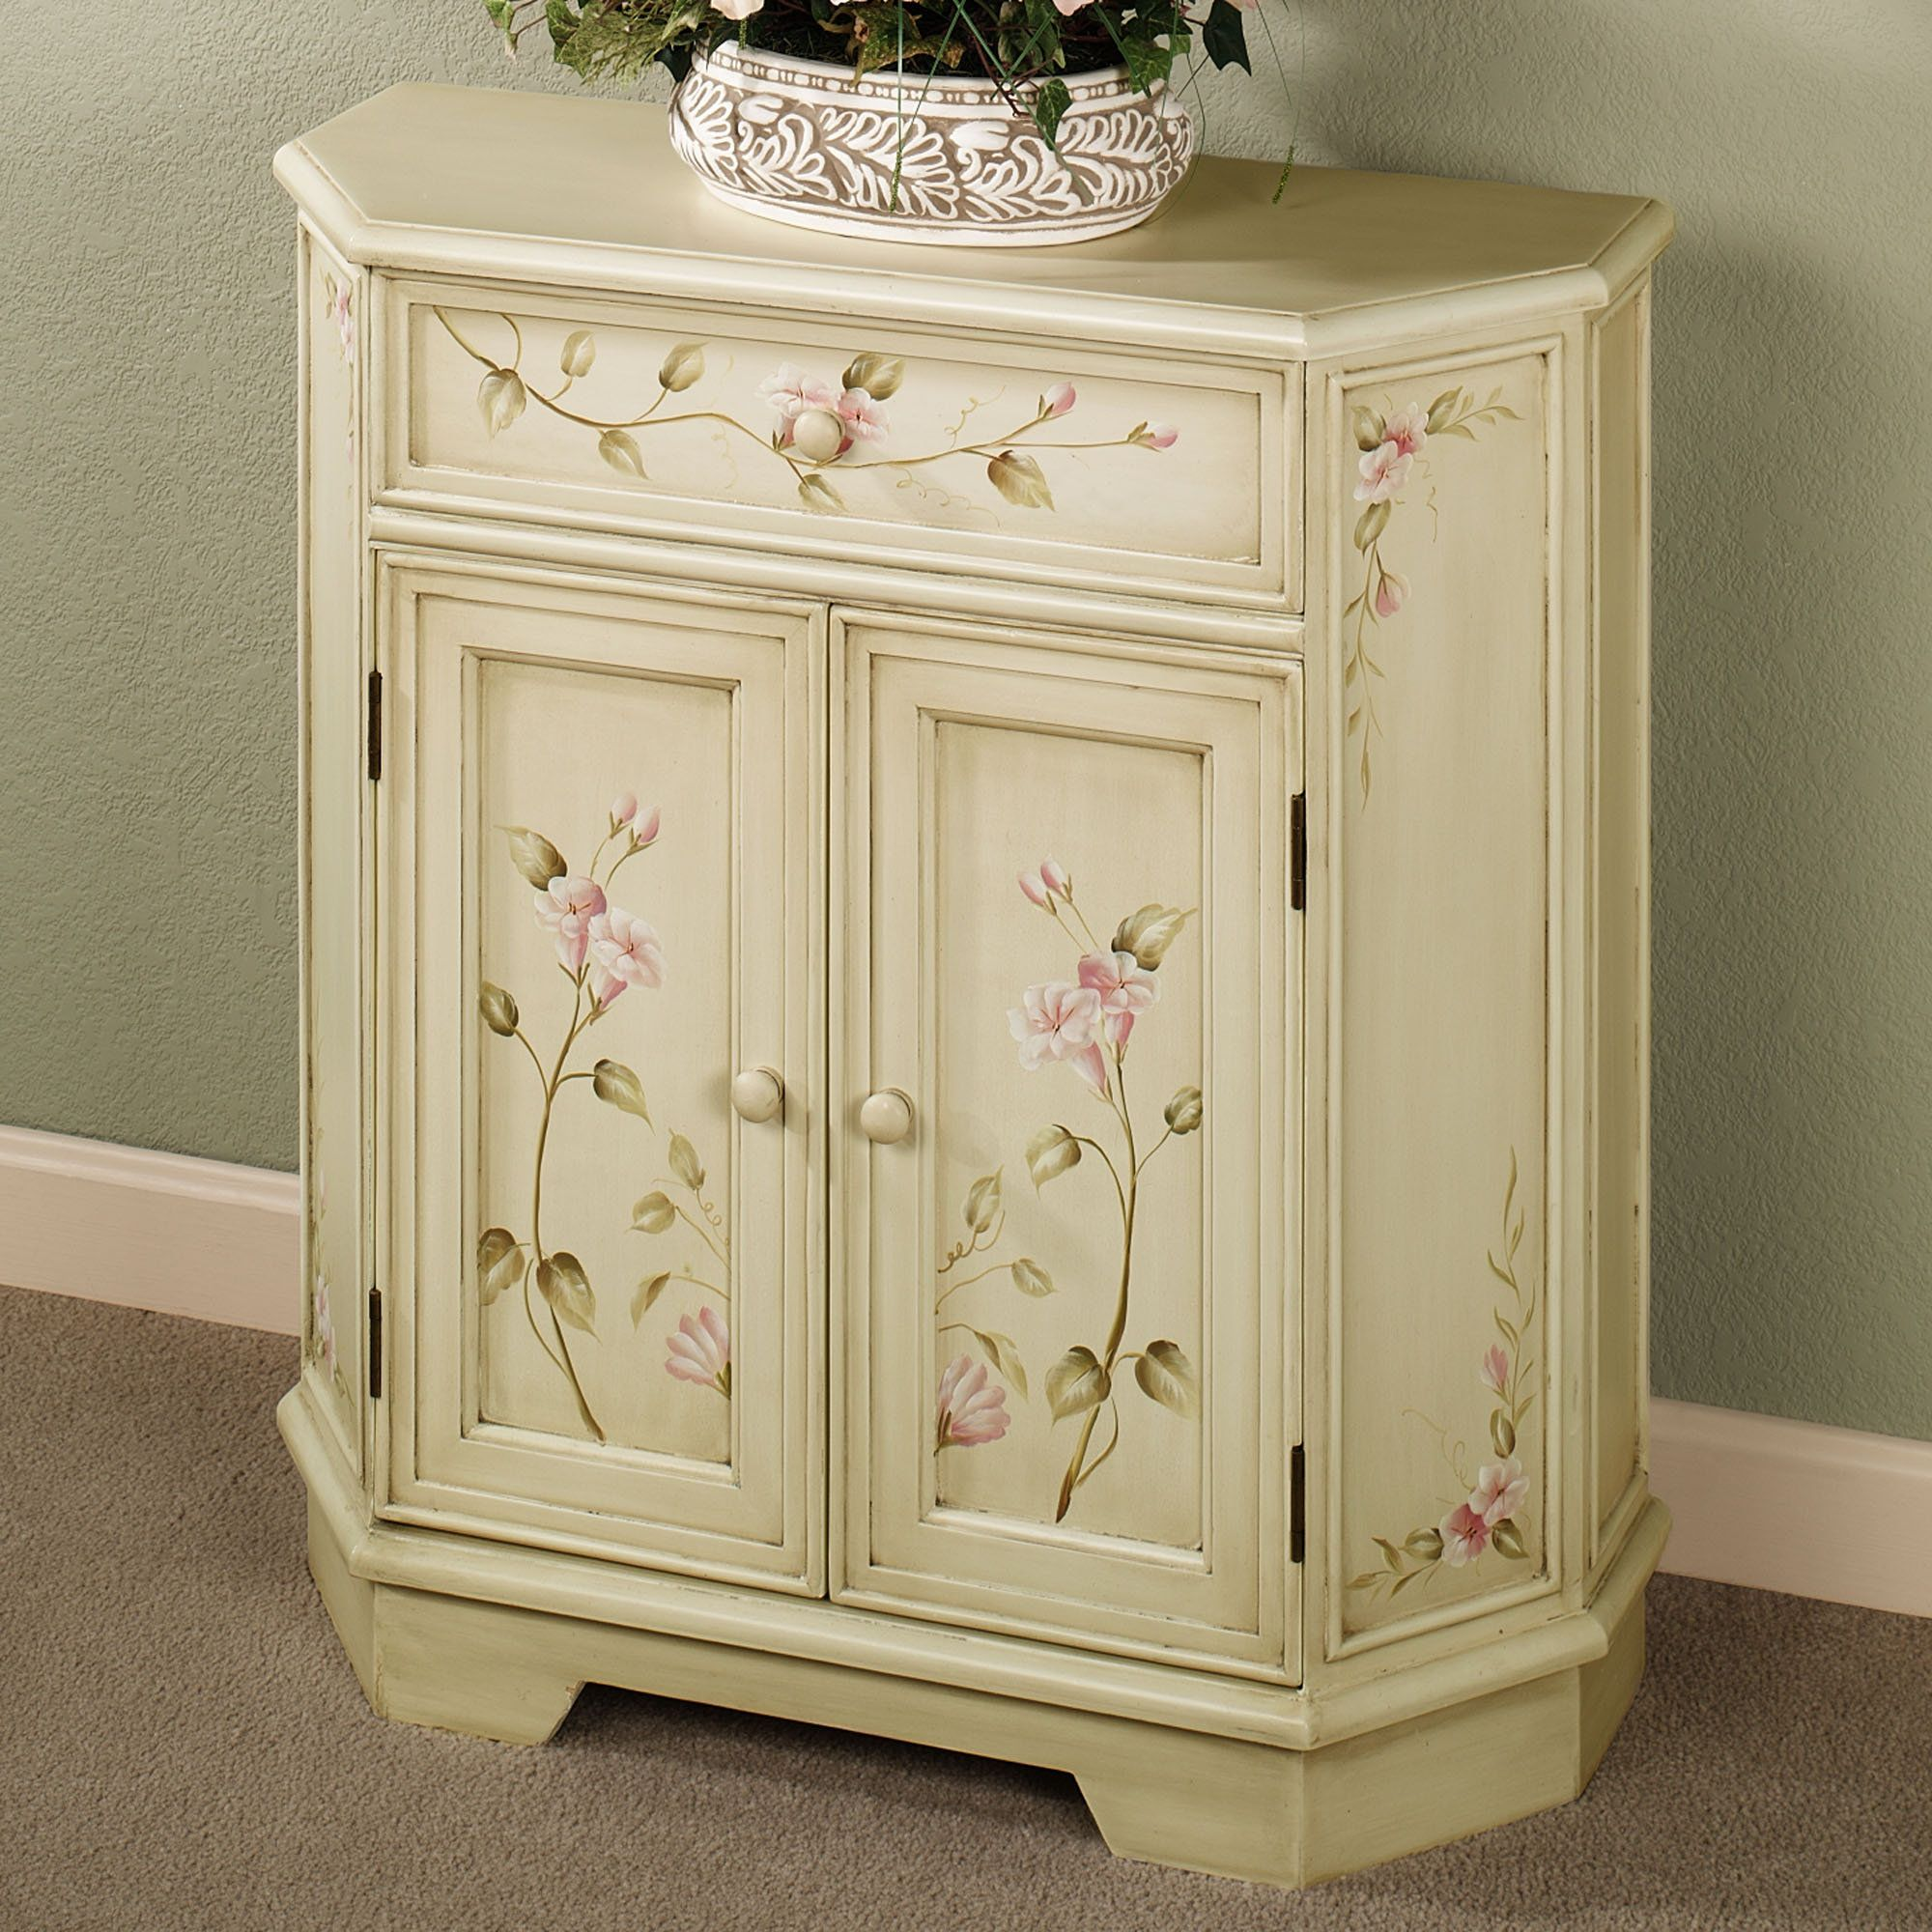 Attractive Bianca Antique White Floral Storage Cabinet. Hand Painted ...